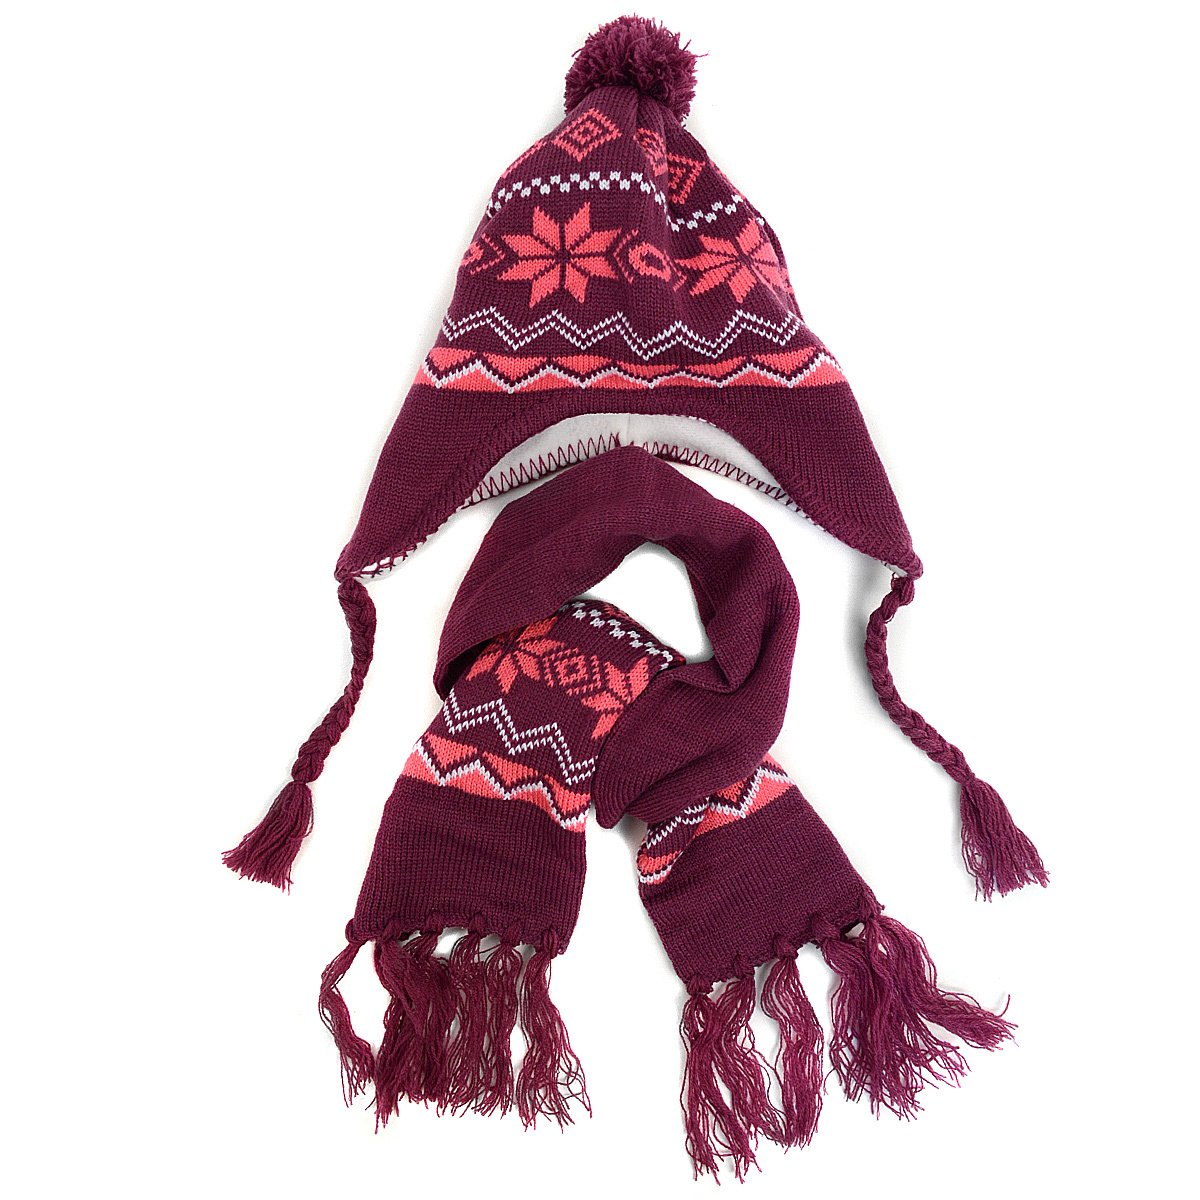 Girls Winter Knit Hat /& Scarf Two Piece Set ~ Lined Hat with Ear Flaps Pom Pom /& Scarf with Tassels ~ Snowflake Design in Purple /& Pink